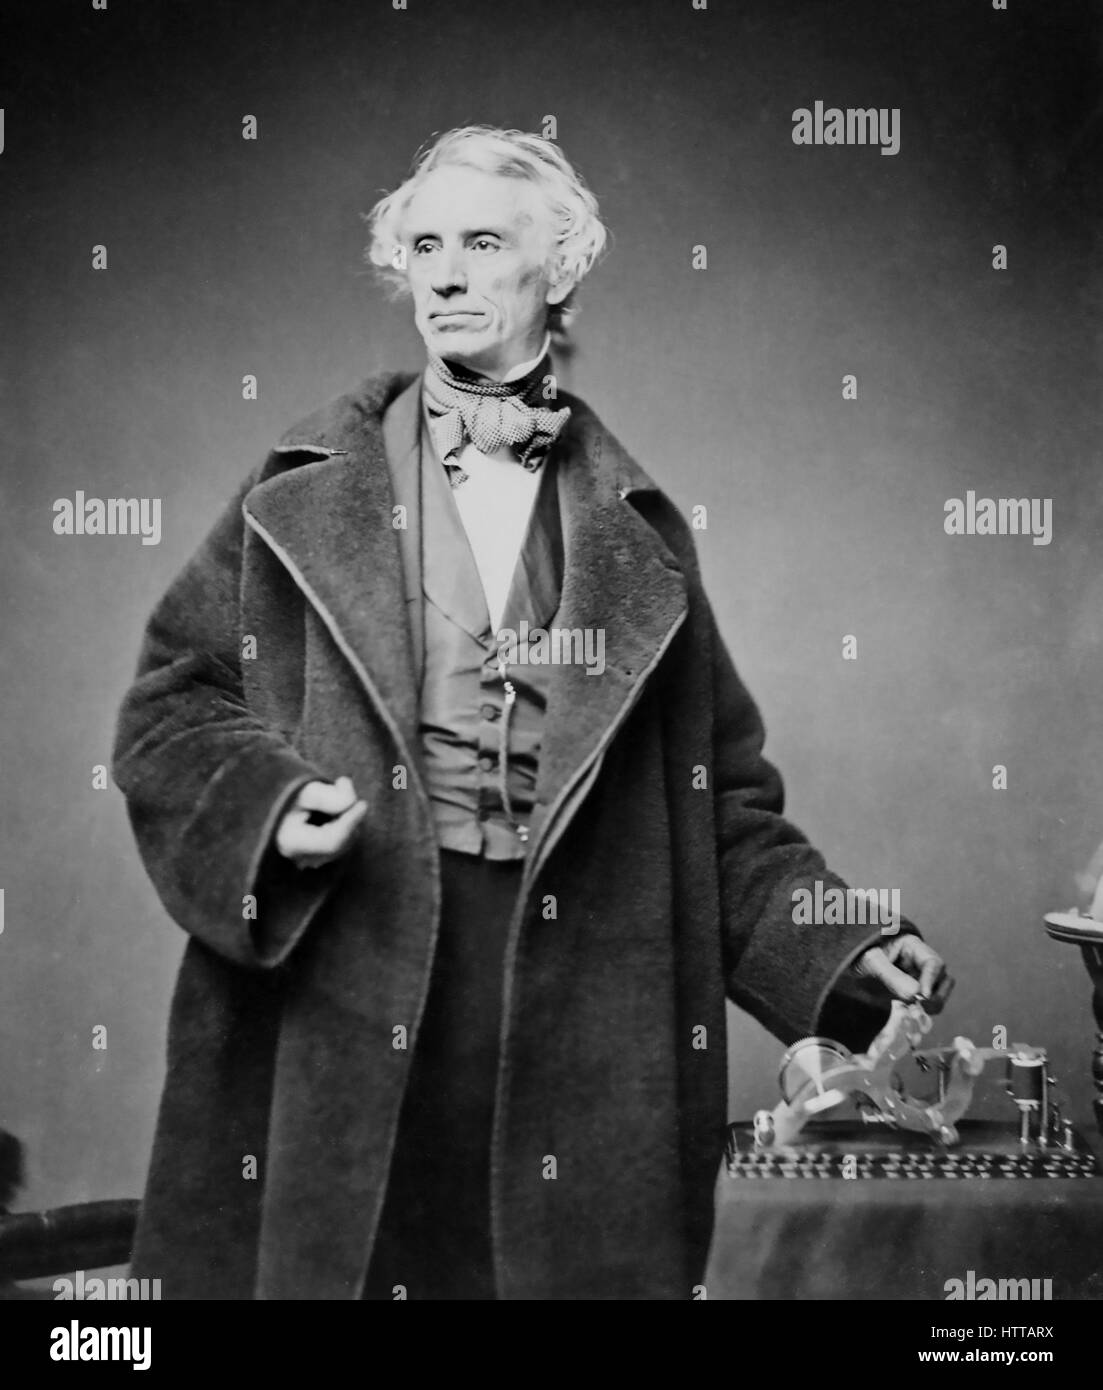 SAMUEL MORSE (1791-1872) with his telegraph transmitter photographed by Matthew Brady in 1857 - Stock Image